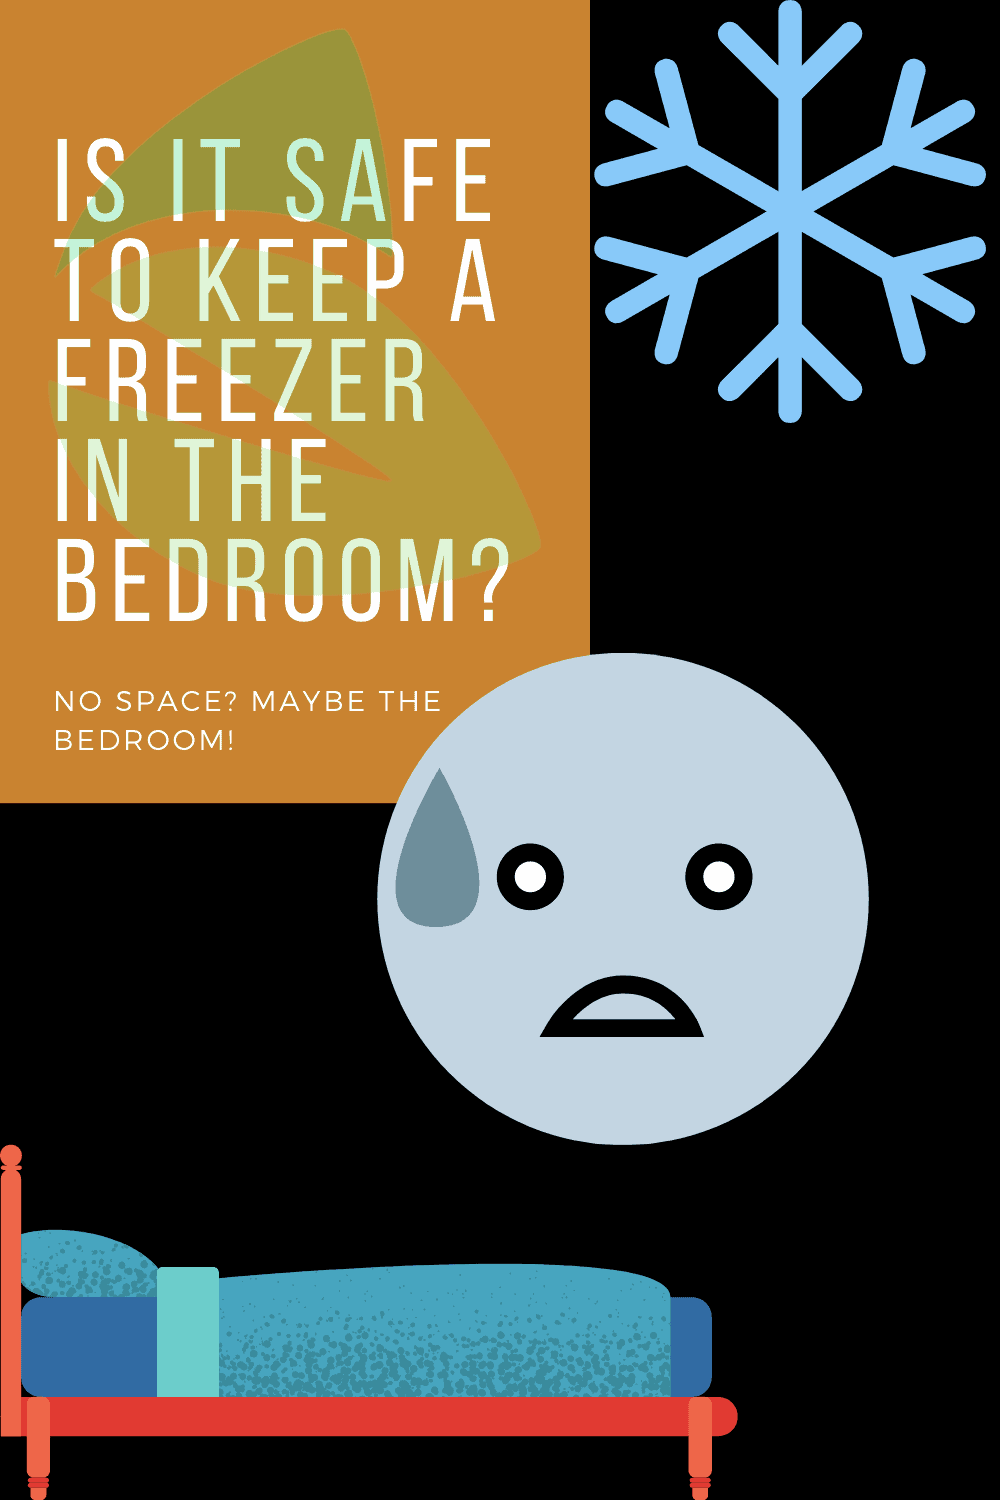 Is It Safe to Keep a Freezer in the Bedroom